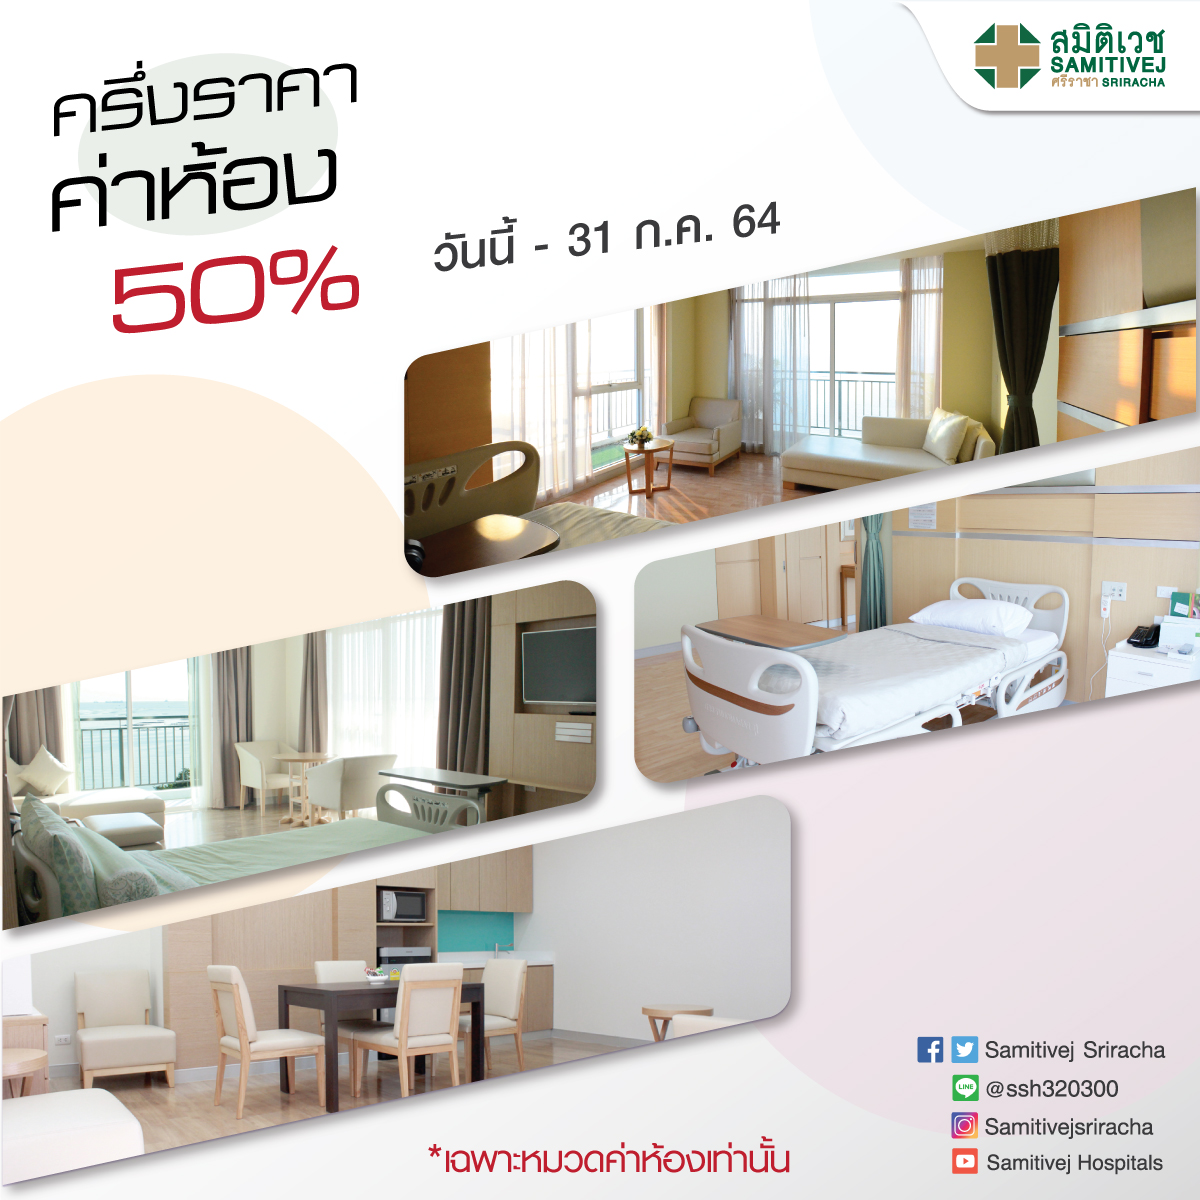 50% Discount on Inpatient Room Rates